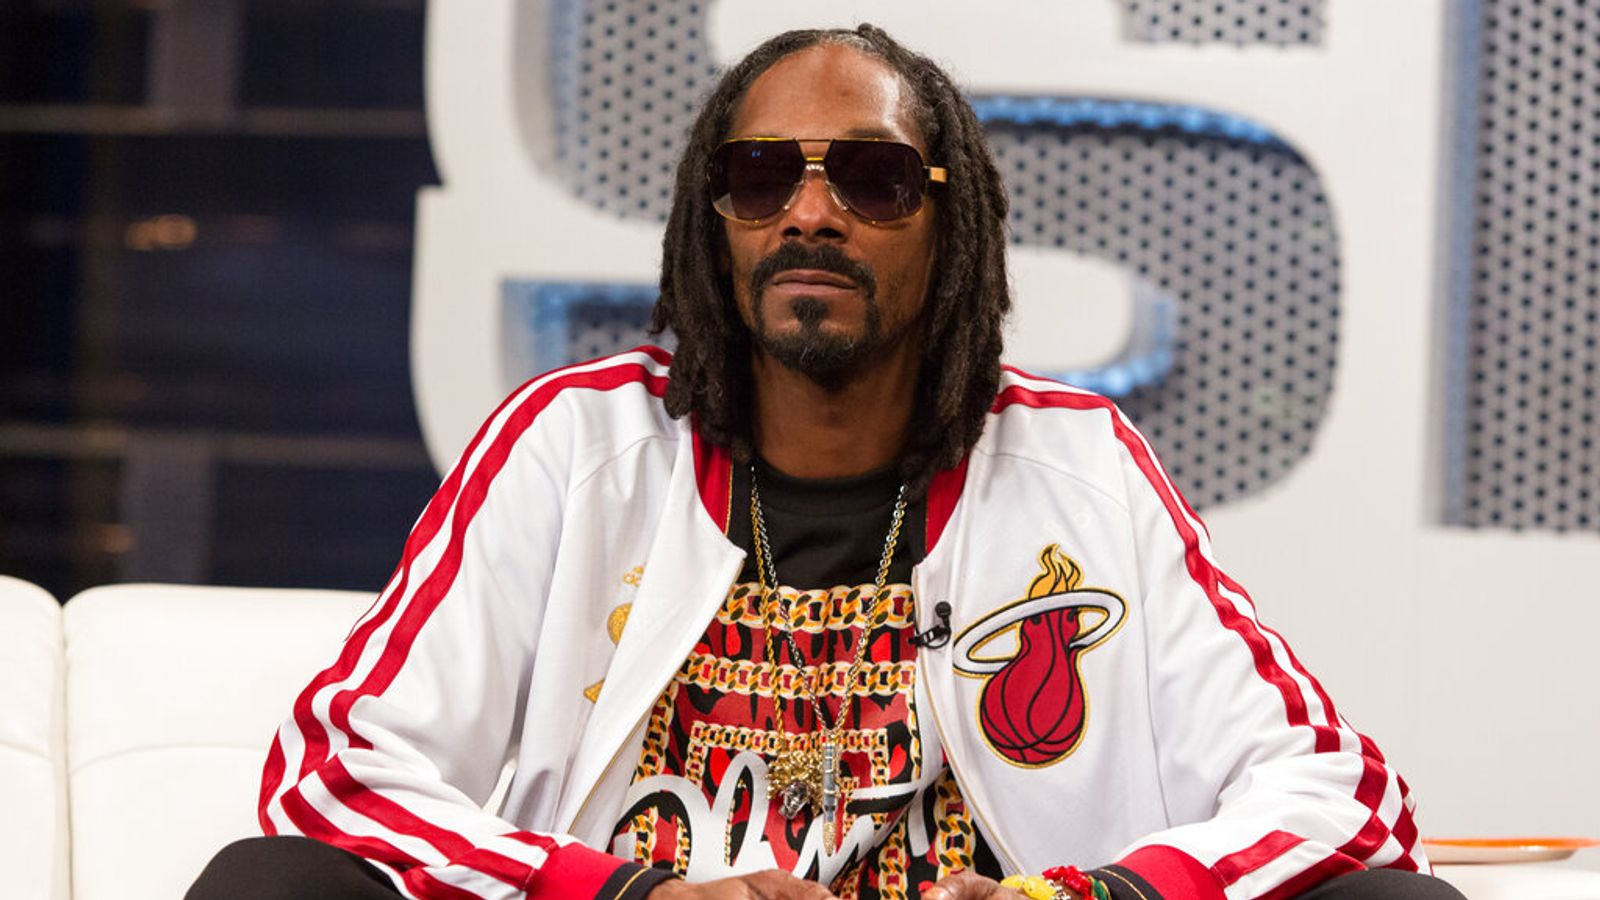 Snoop Dogg Ragequits And Swears During Twitch Gaming Livestream When Someone Scores Against Him Ents Arts News Sky News